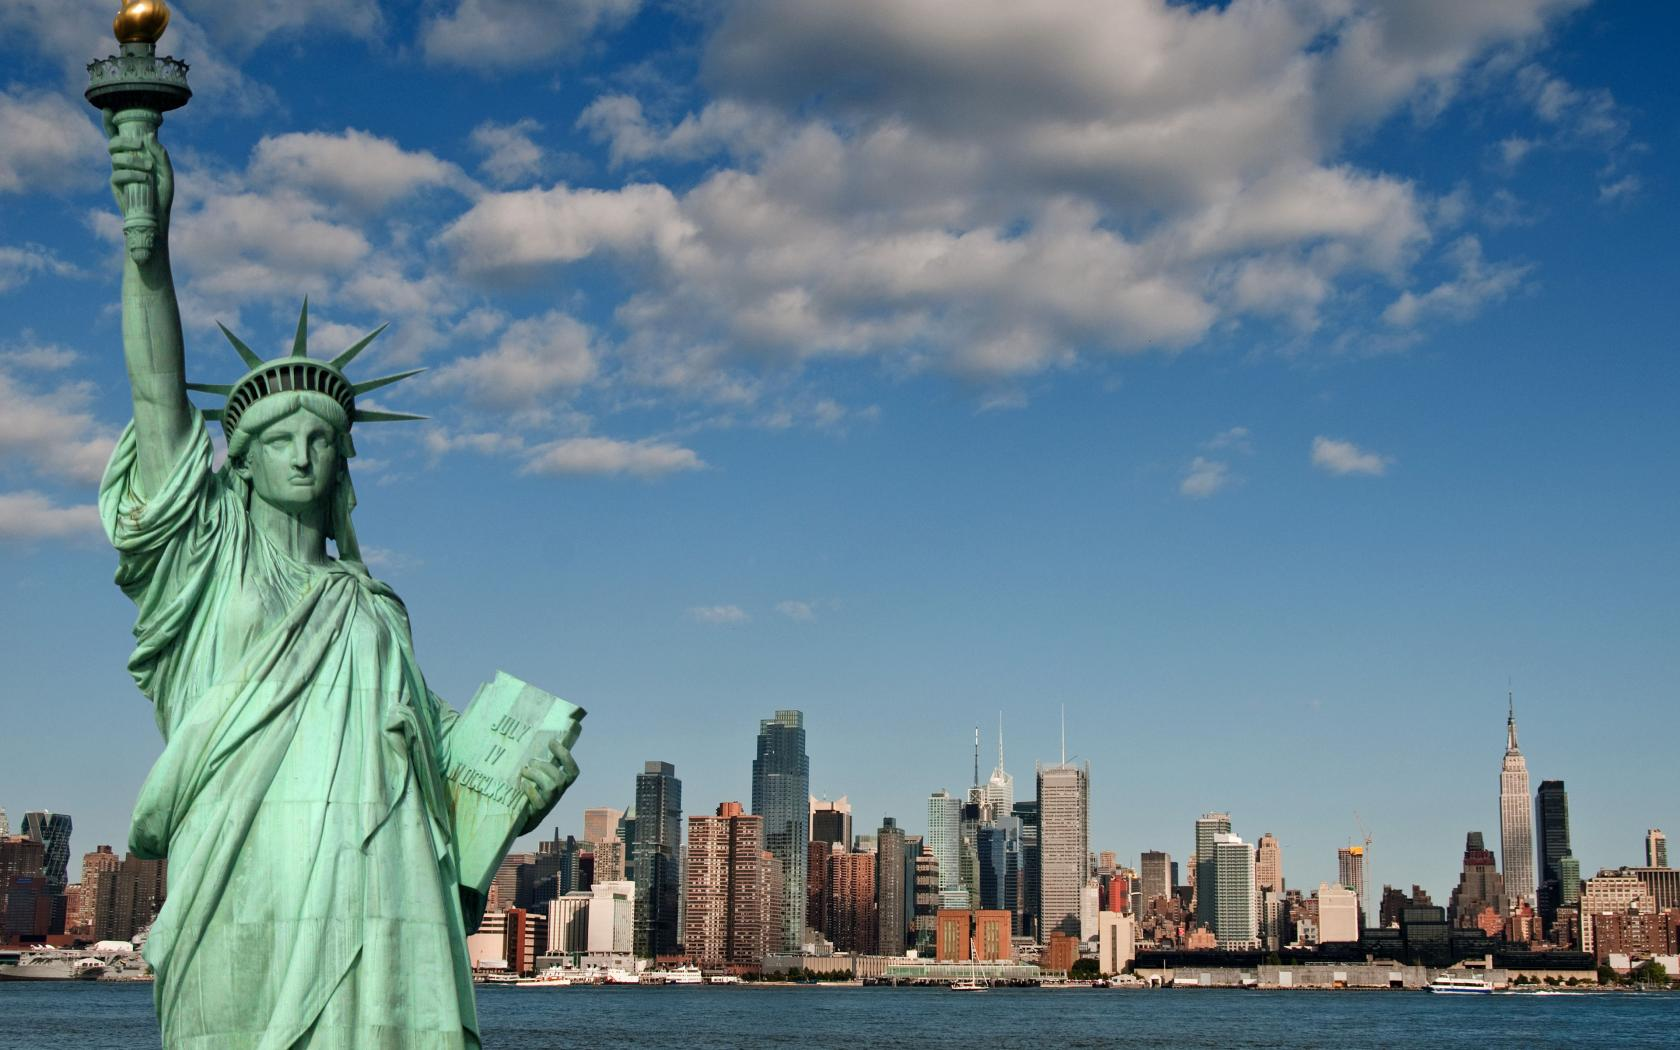 Statue-of-Liberty-in-New-York-City-United-States-1050x1680.jpg